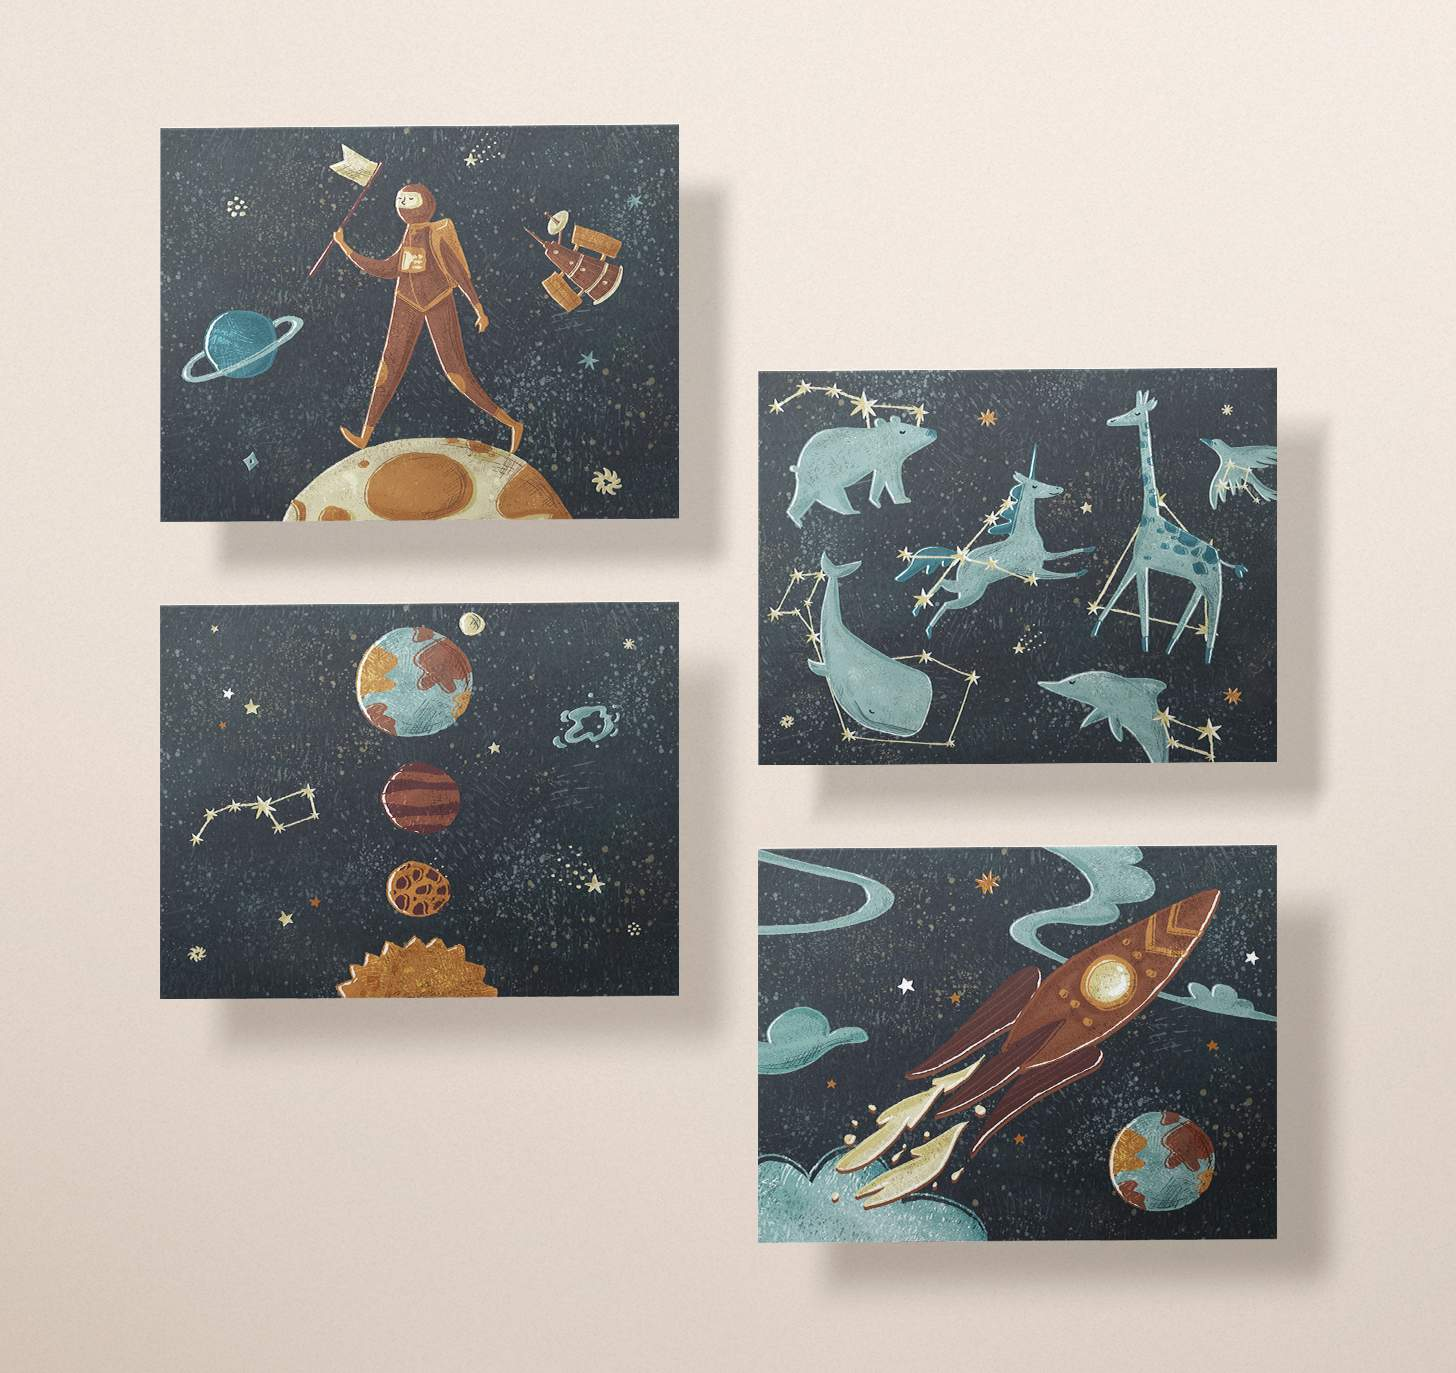 Four space cards featuring man on the moon, constellations, rocket ship, and solar system designs